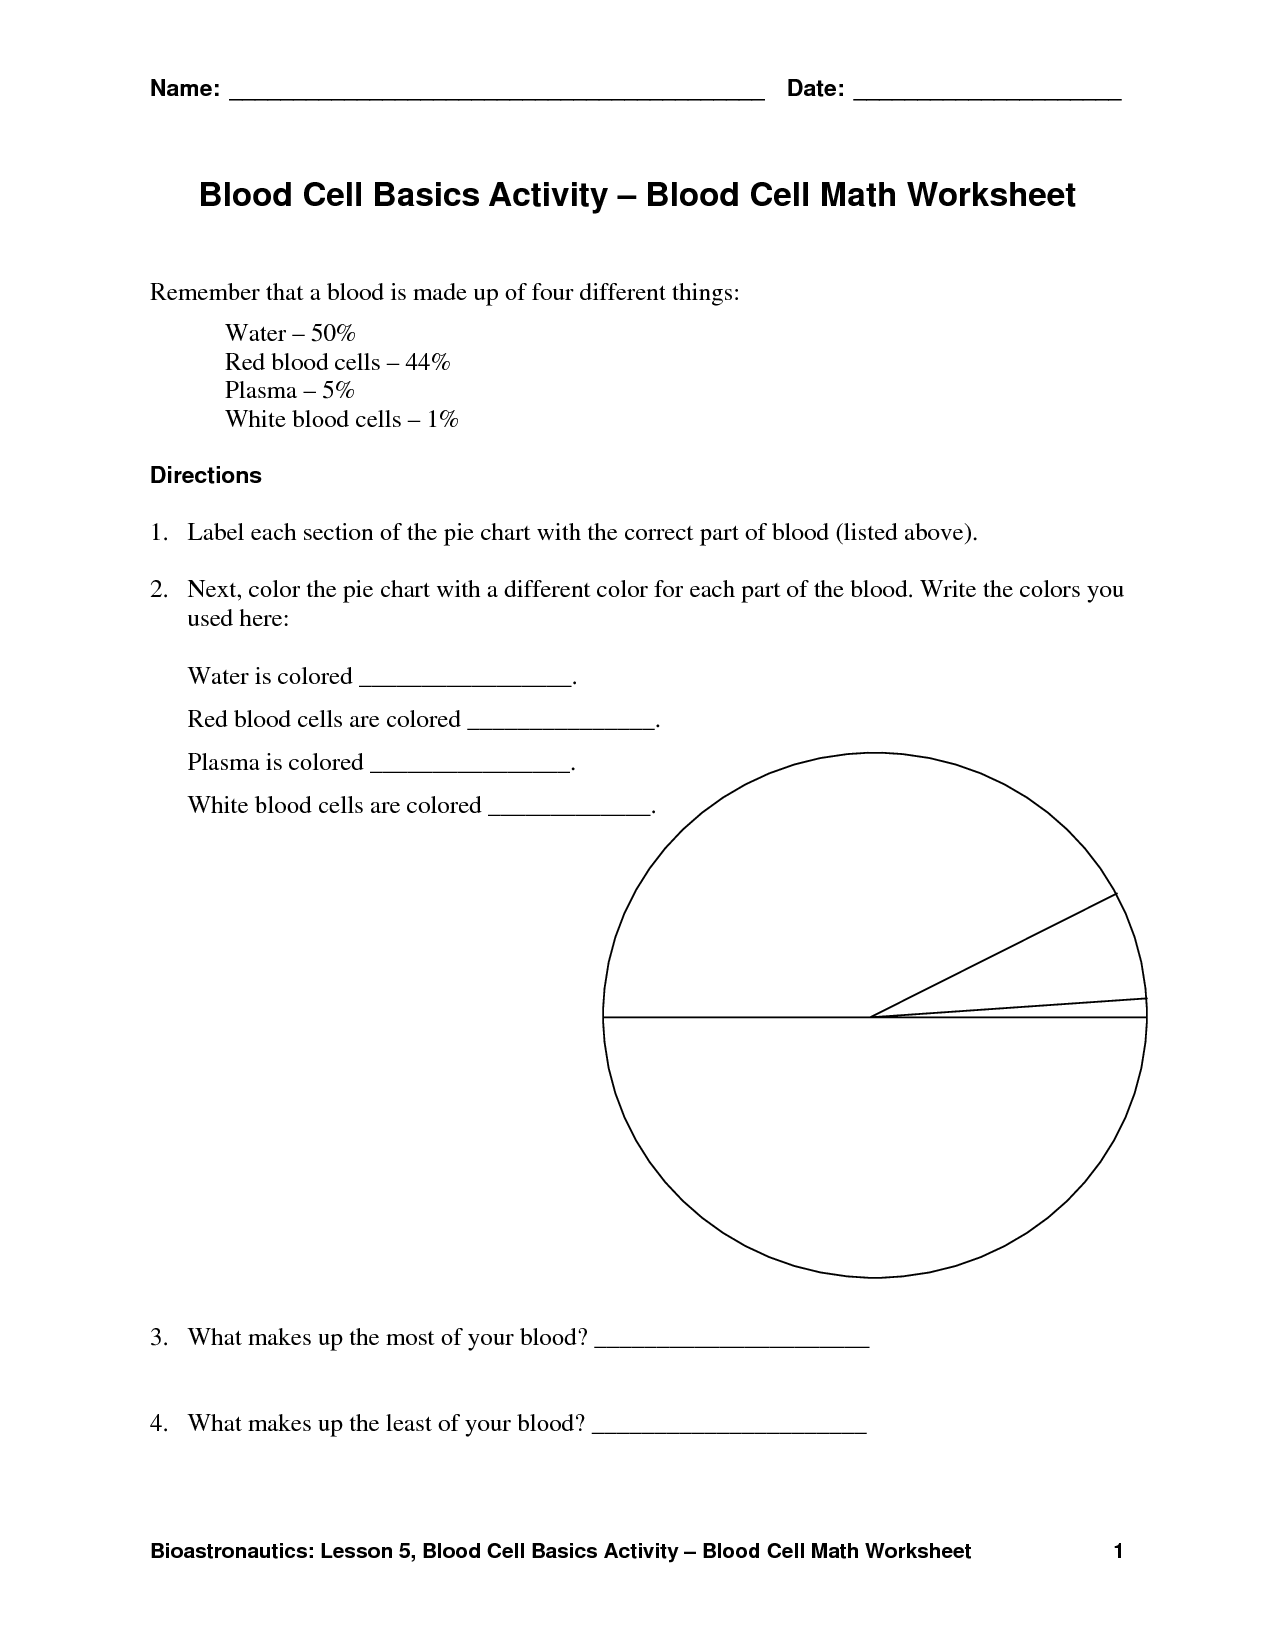 29 Functions Of Blood Cells Worksheet Answers